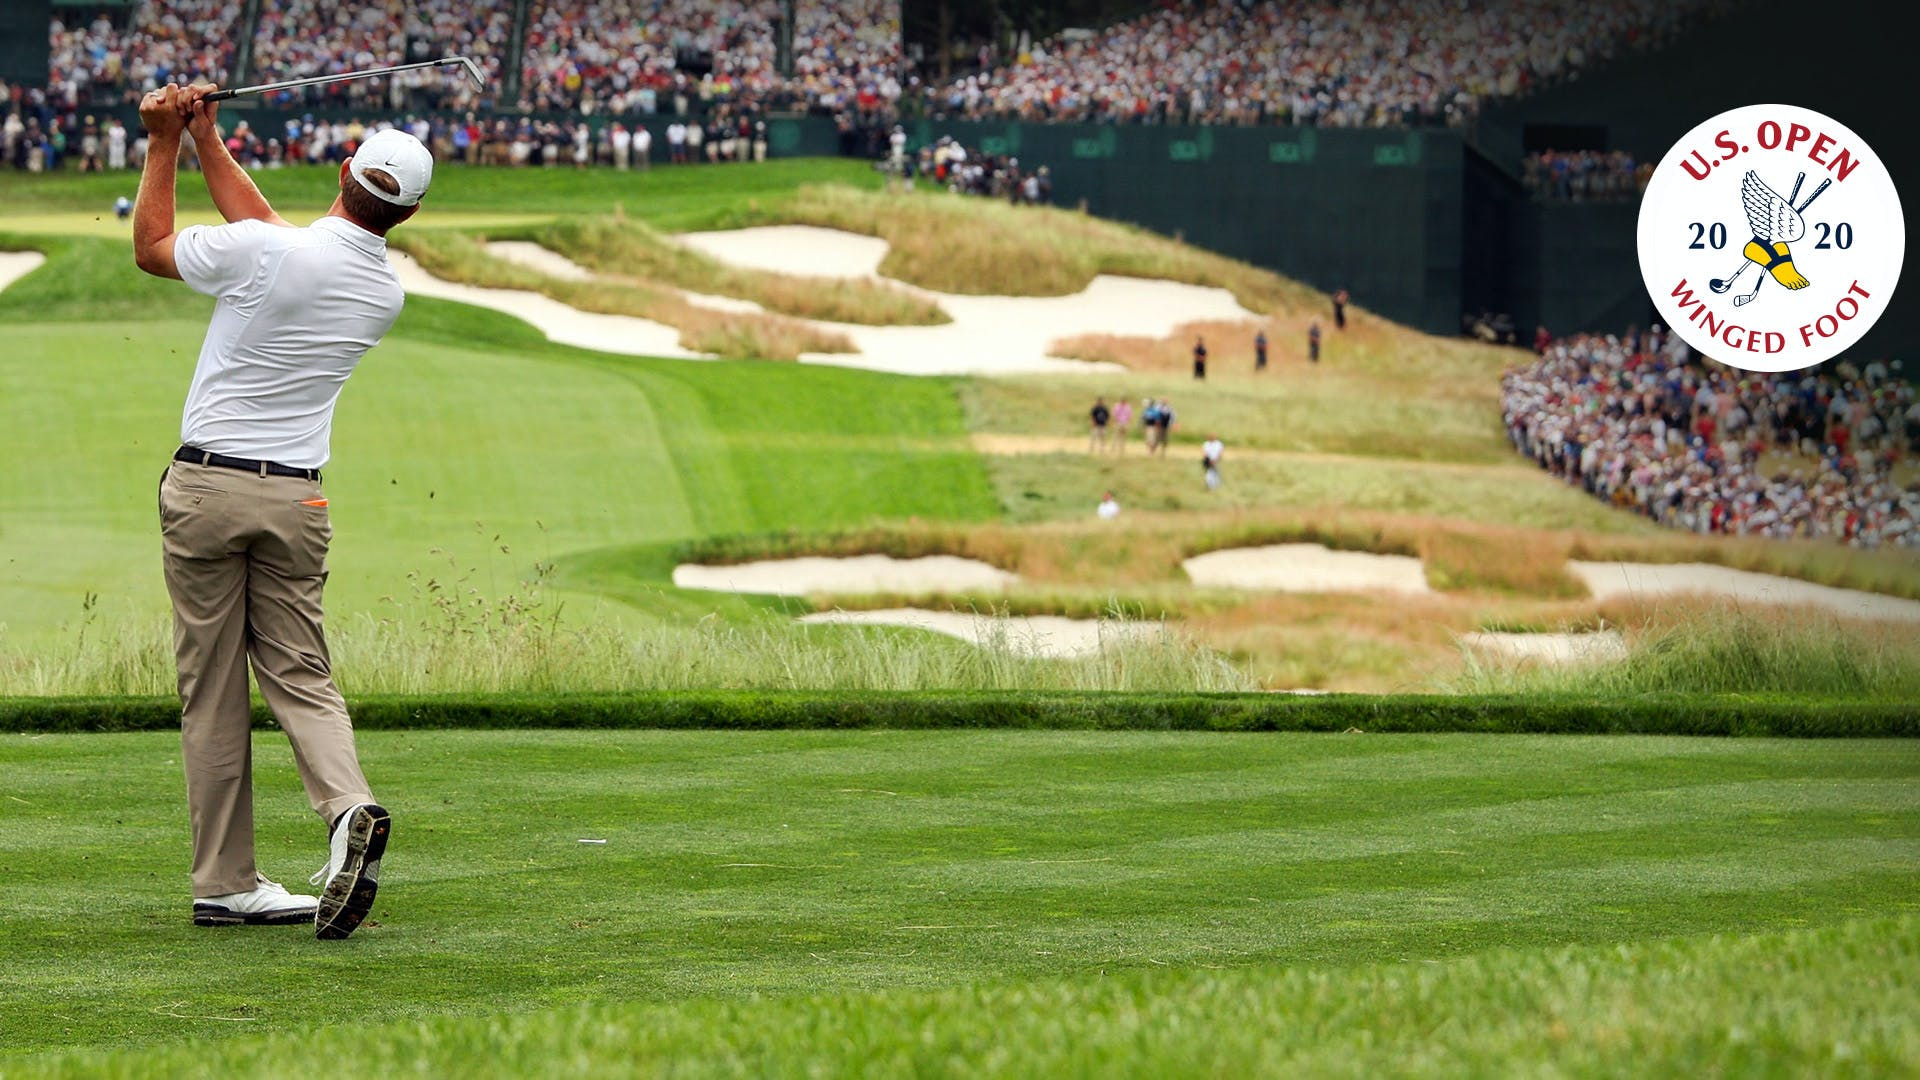 The Rules to Qualify for the US Open Golf Tournament